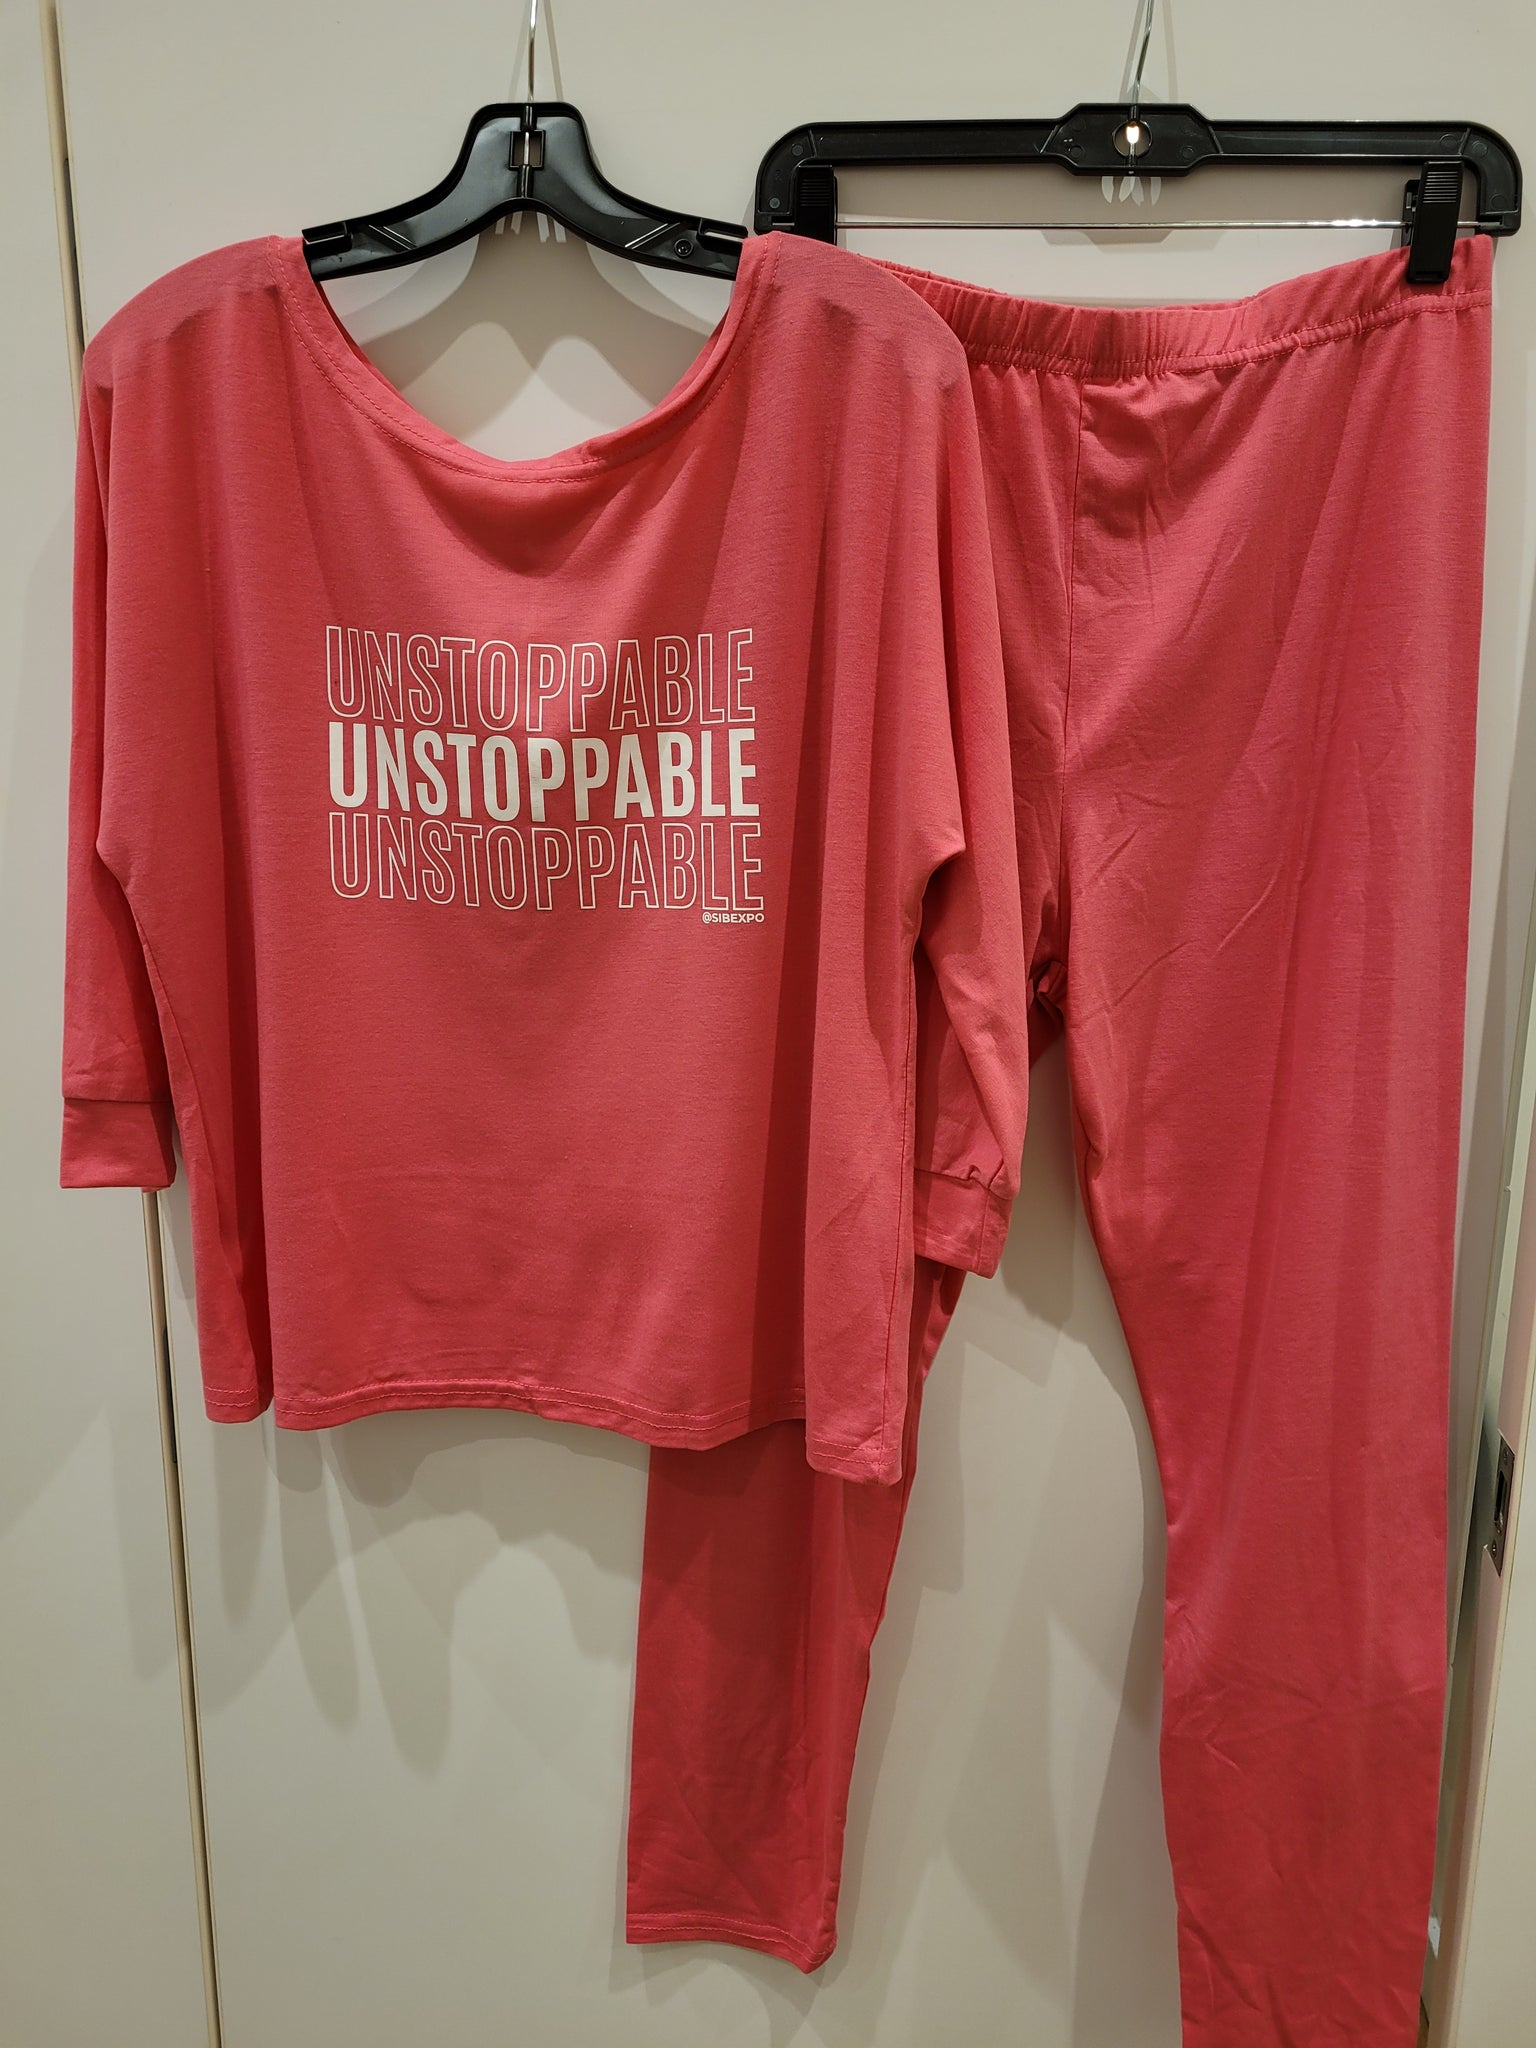 Unstoppable Loungewear Set